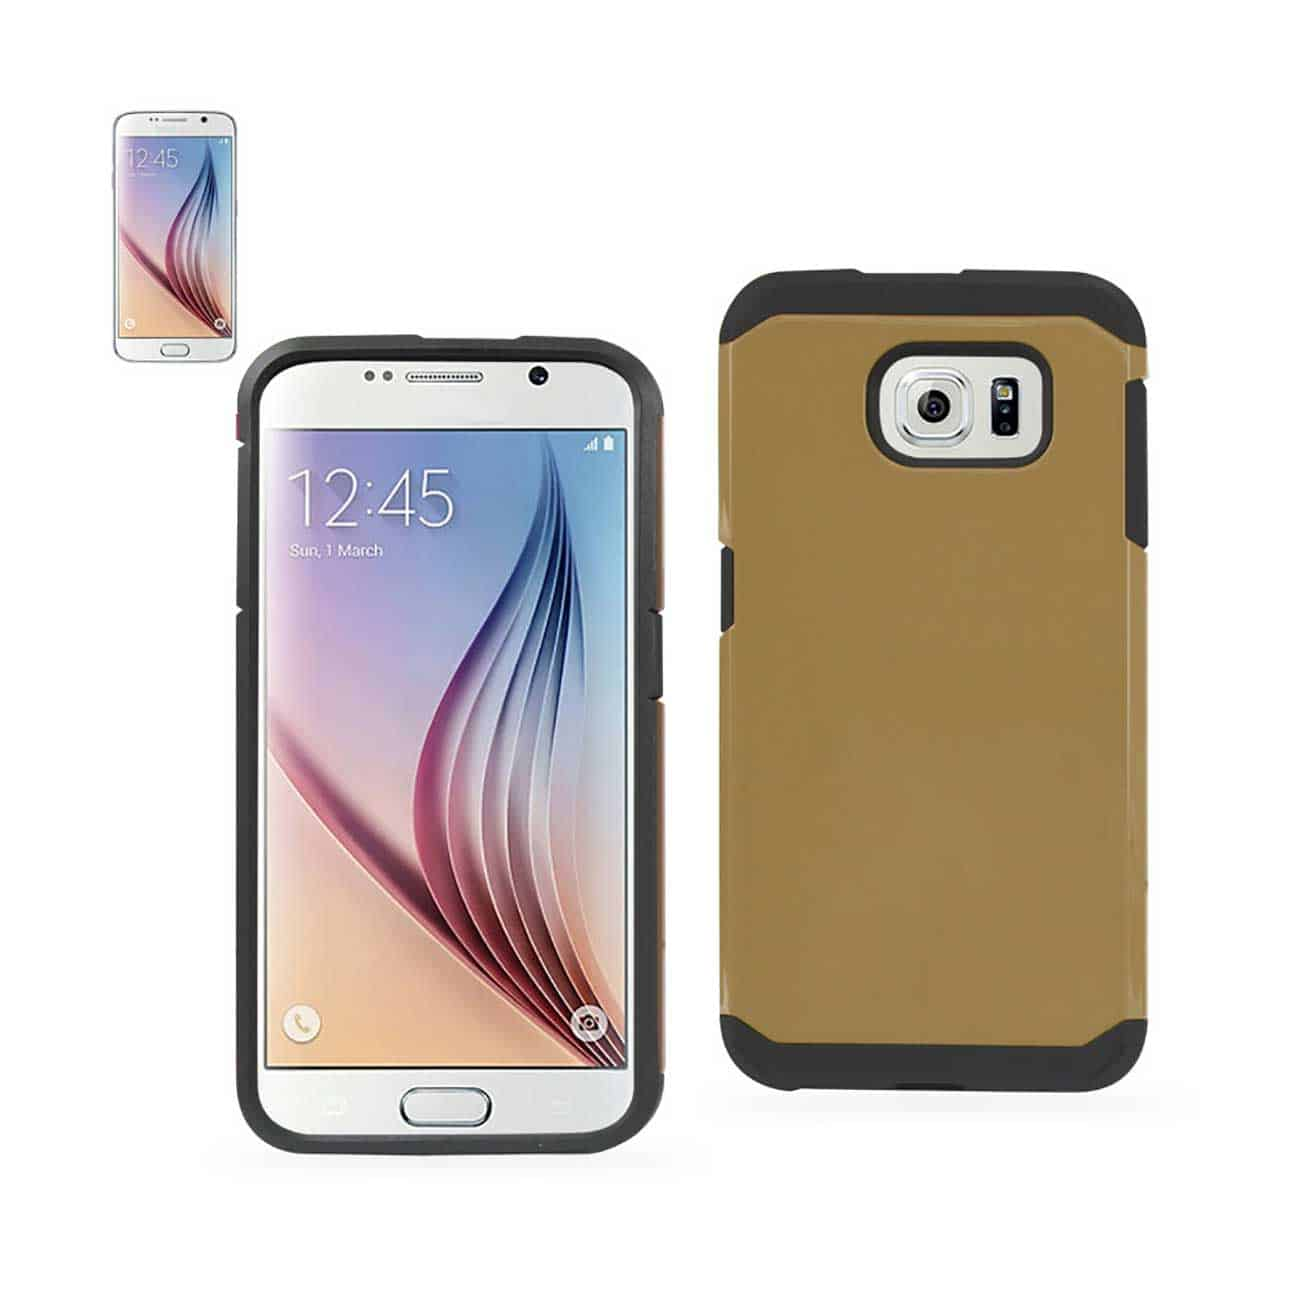 SAMSUNG GALAXY S6 SLIM ARMOR HYBRID TOUGH CASE IN GOLD